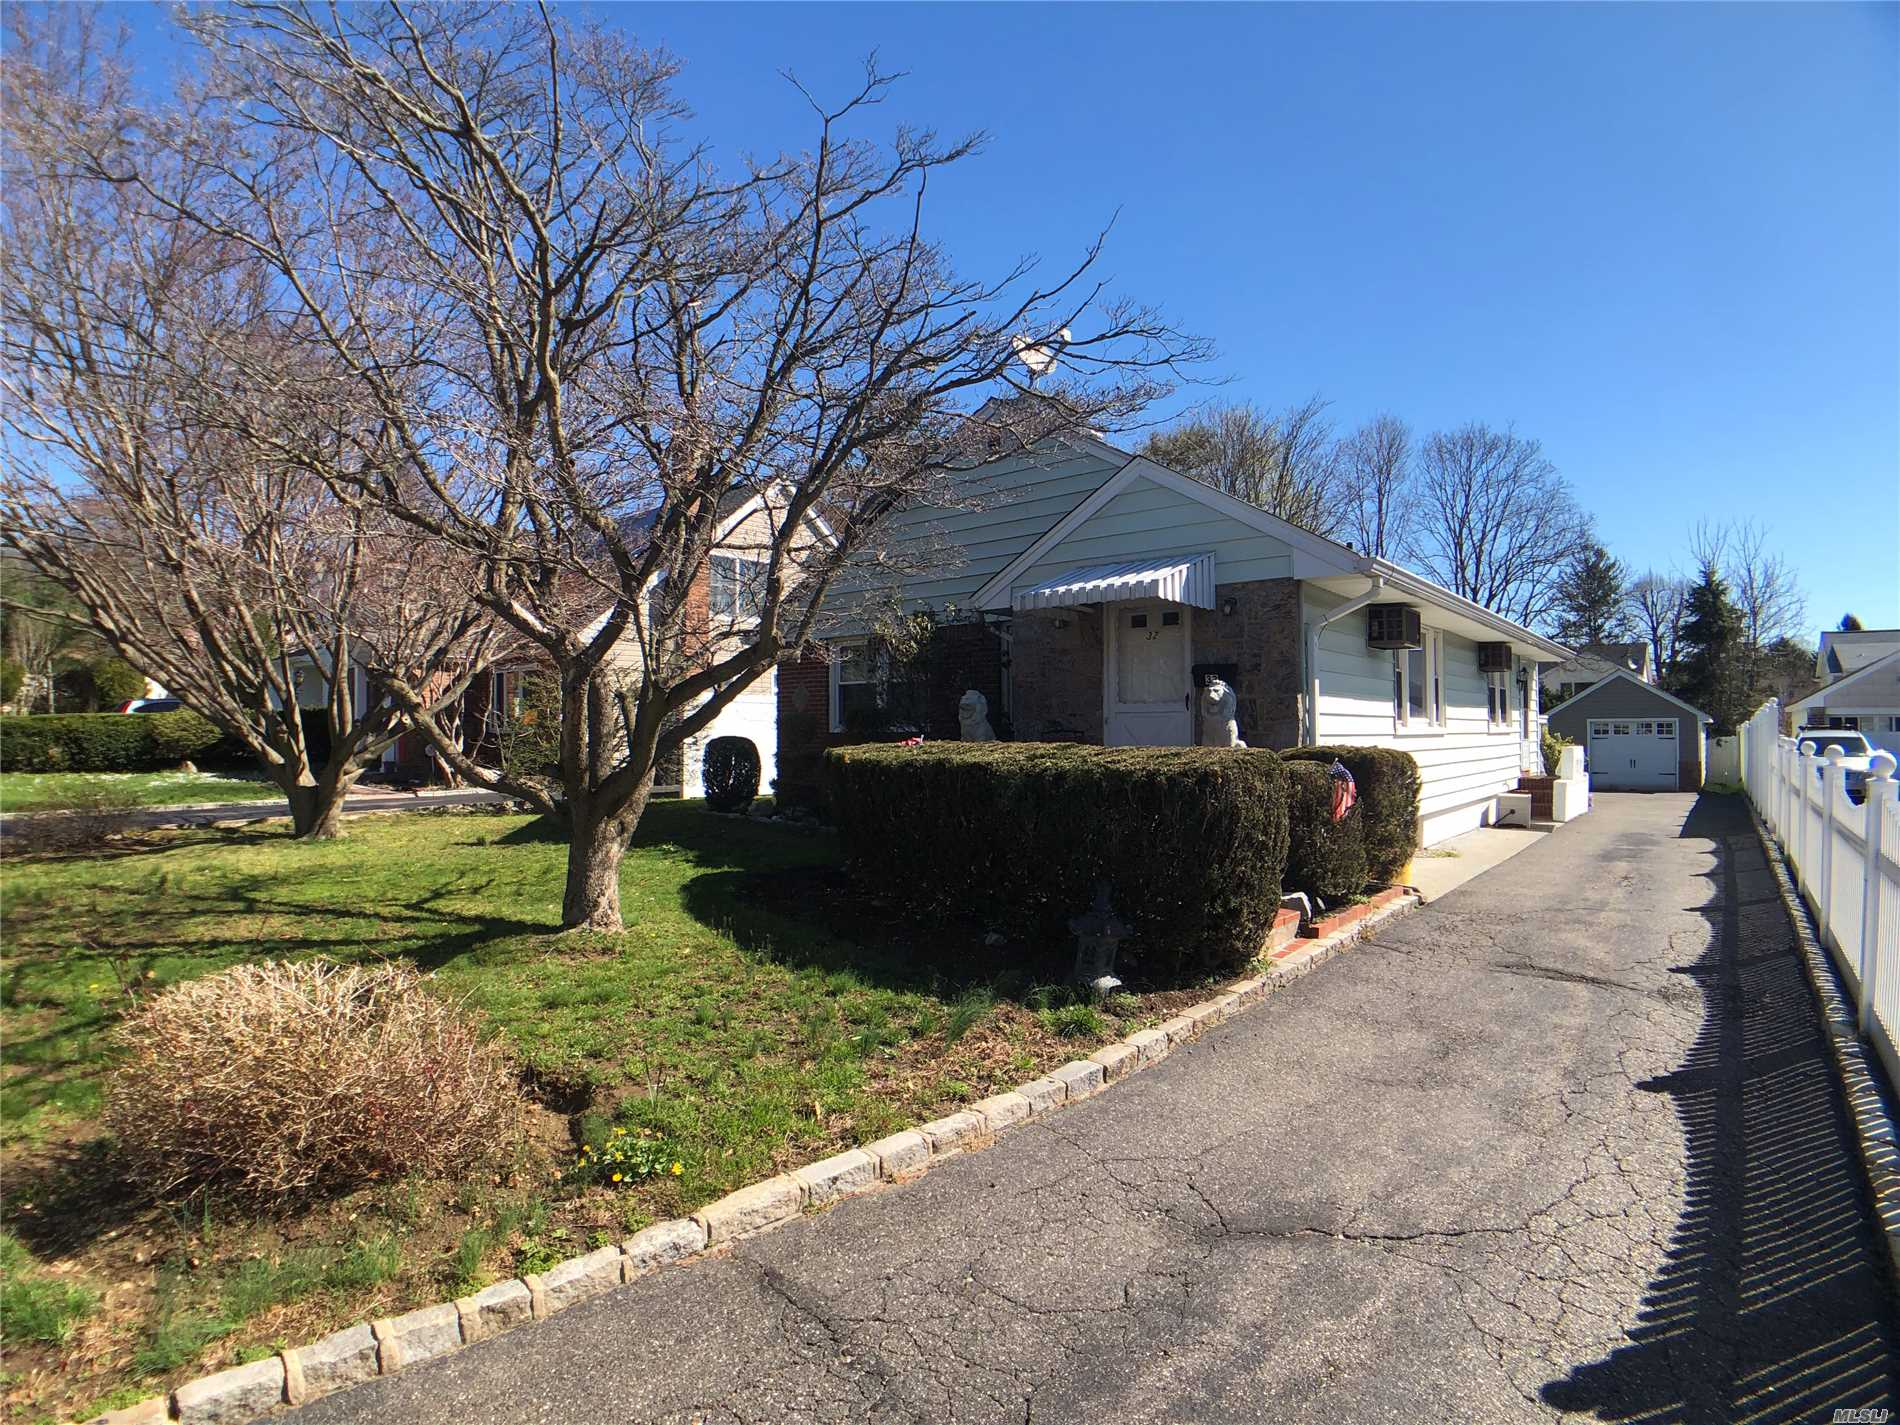 Charming home in Locust Valley, Quiet Tree Lined Street. Close to shopping, dining and attractions. Great Starter home with ability to make your own.